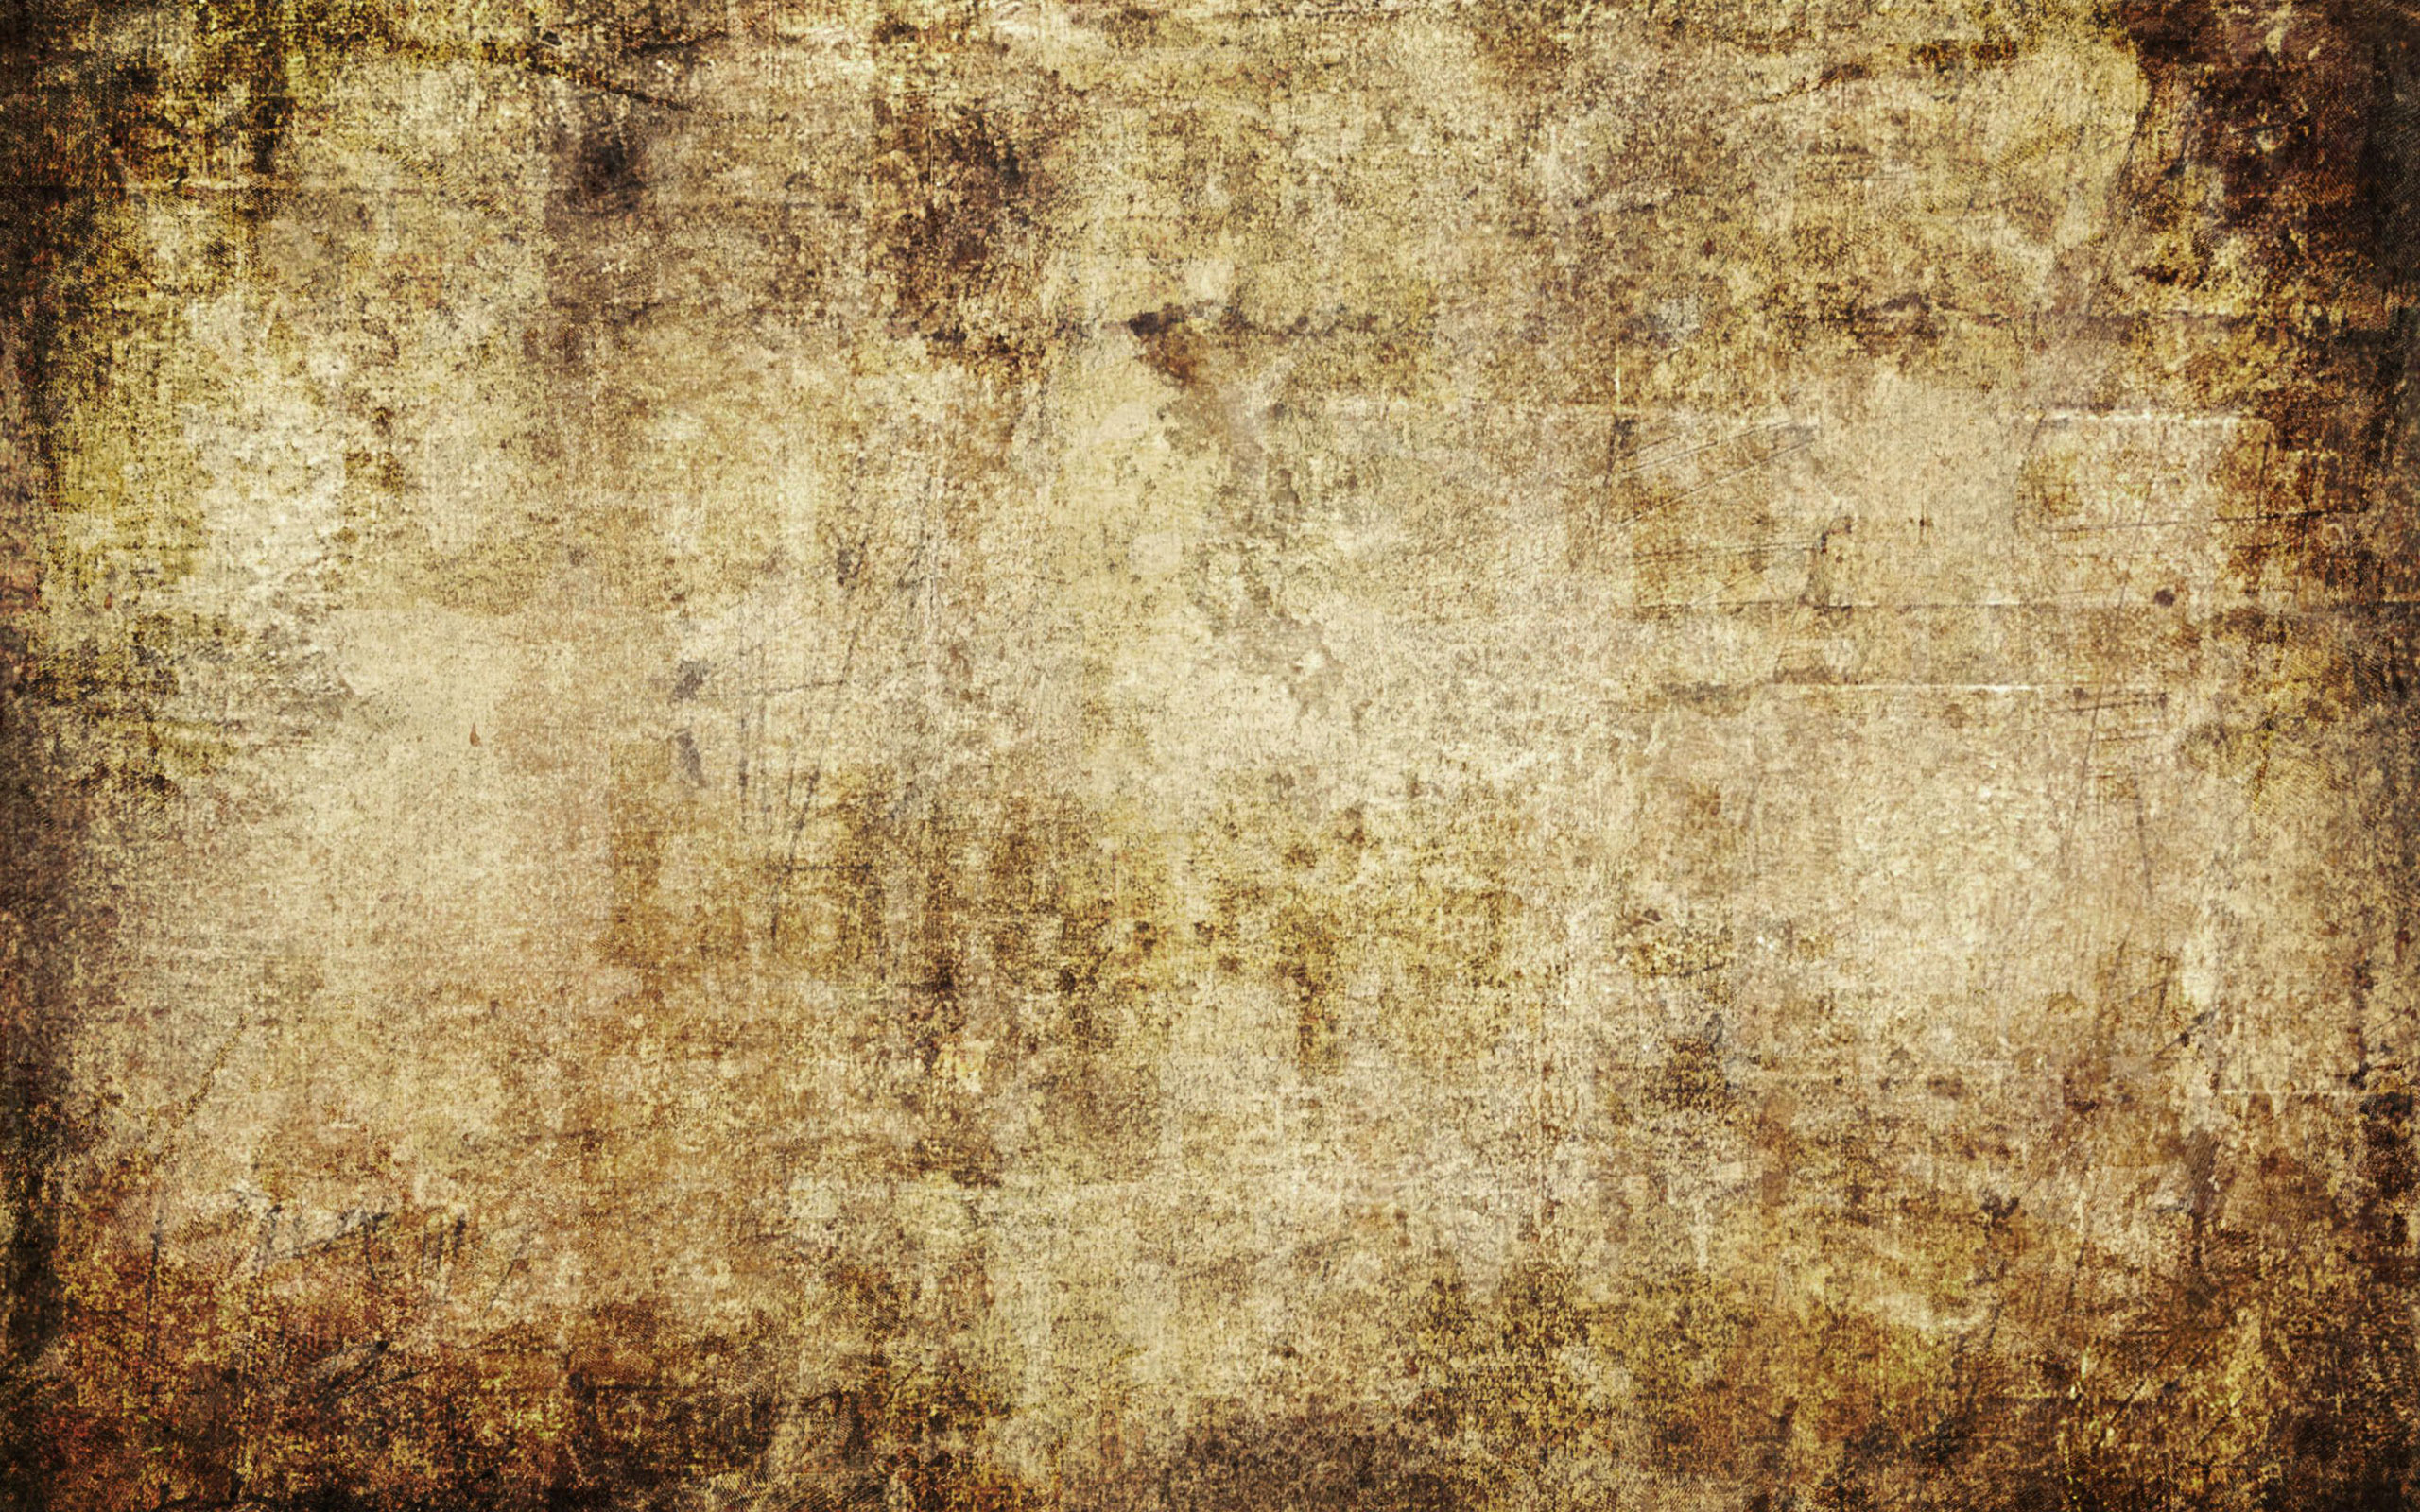 Textured Wallpaper Images